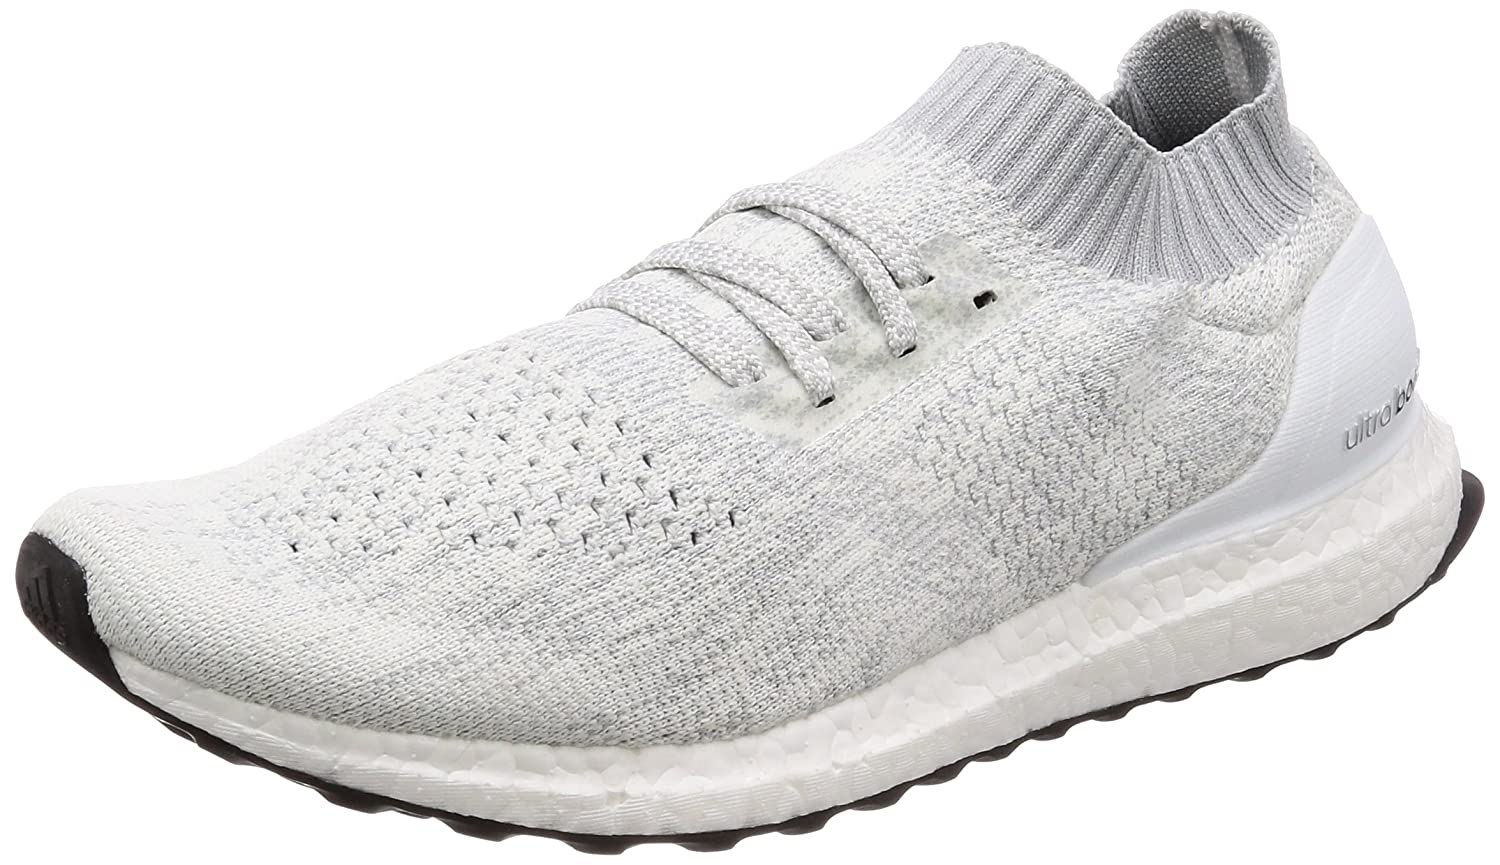 online store b1147 c84e0 Amazon.com   Adidas Ultraboost Uncaged Mens Sneakers White   Fashion  Sneakers